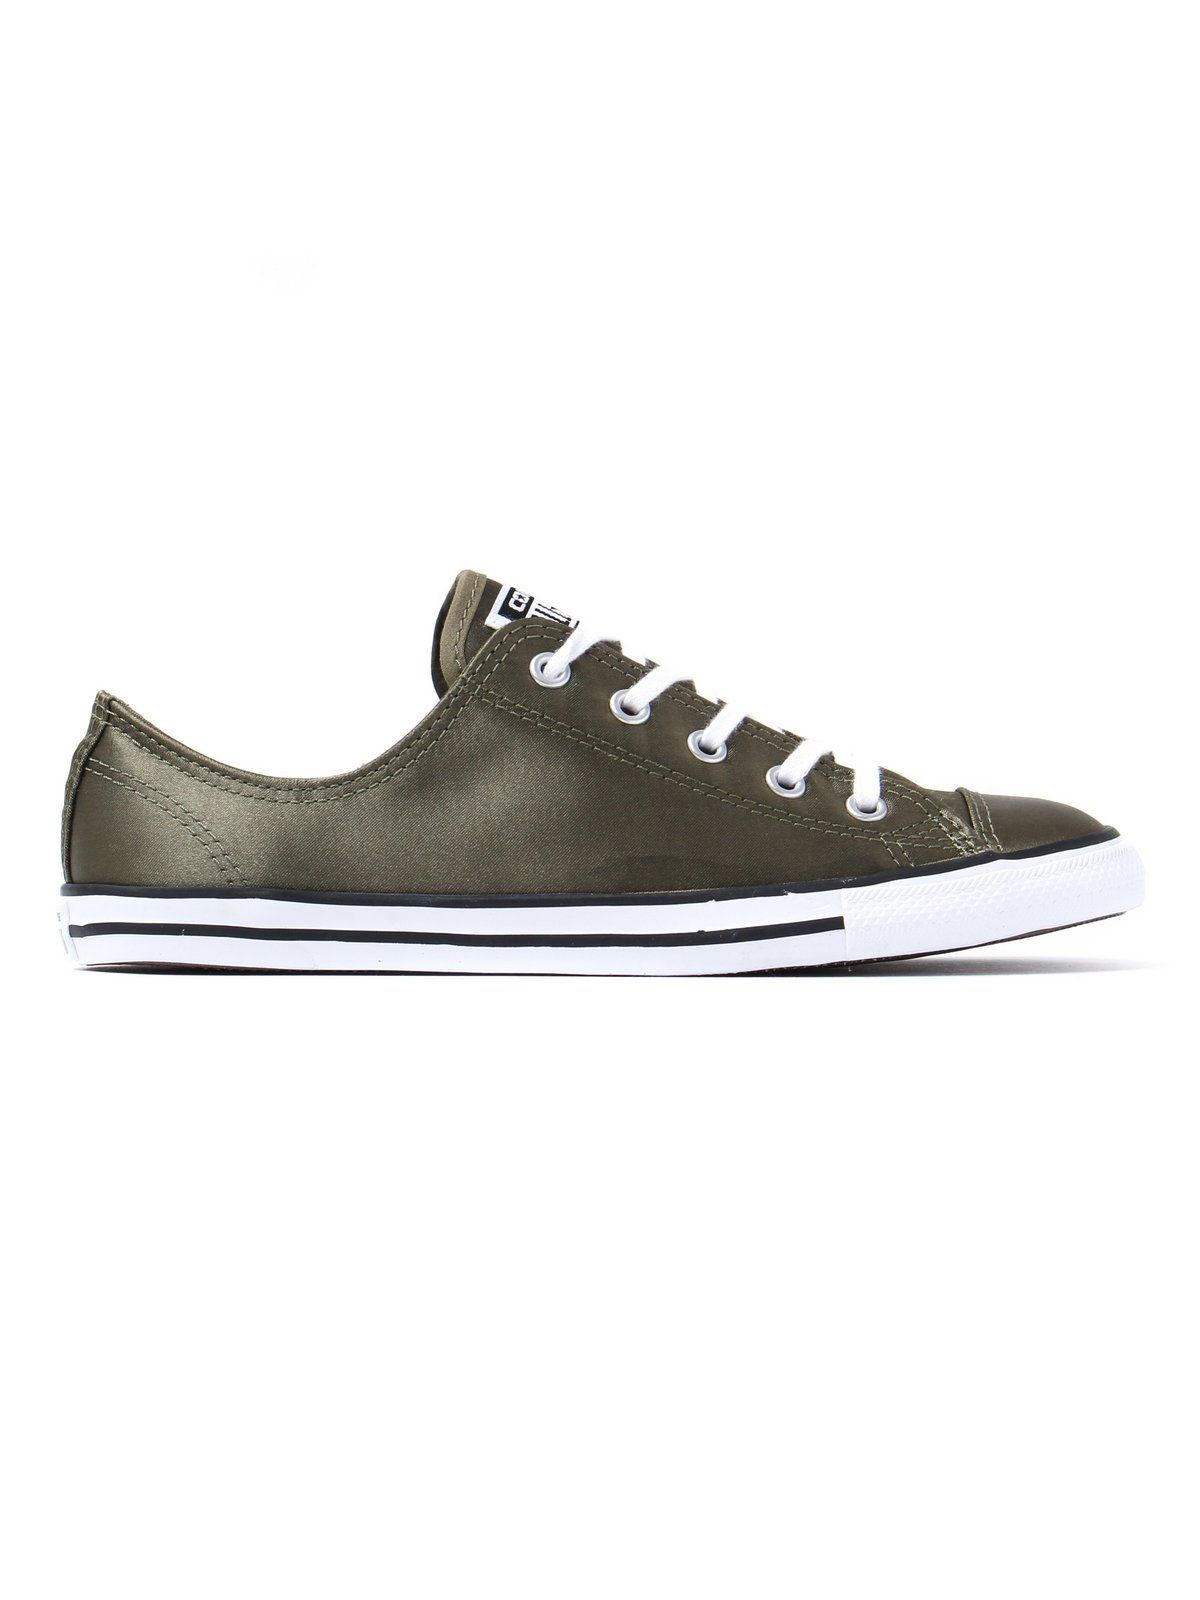 e28d1bab8b4e Converse Women s All Star Dainty OX Canvas Trainers - Olive ...